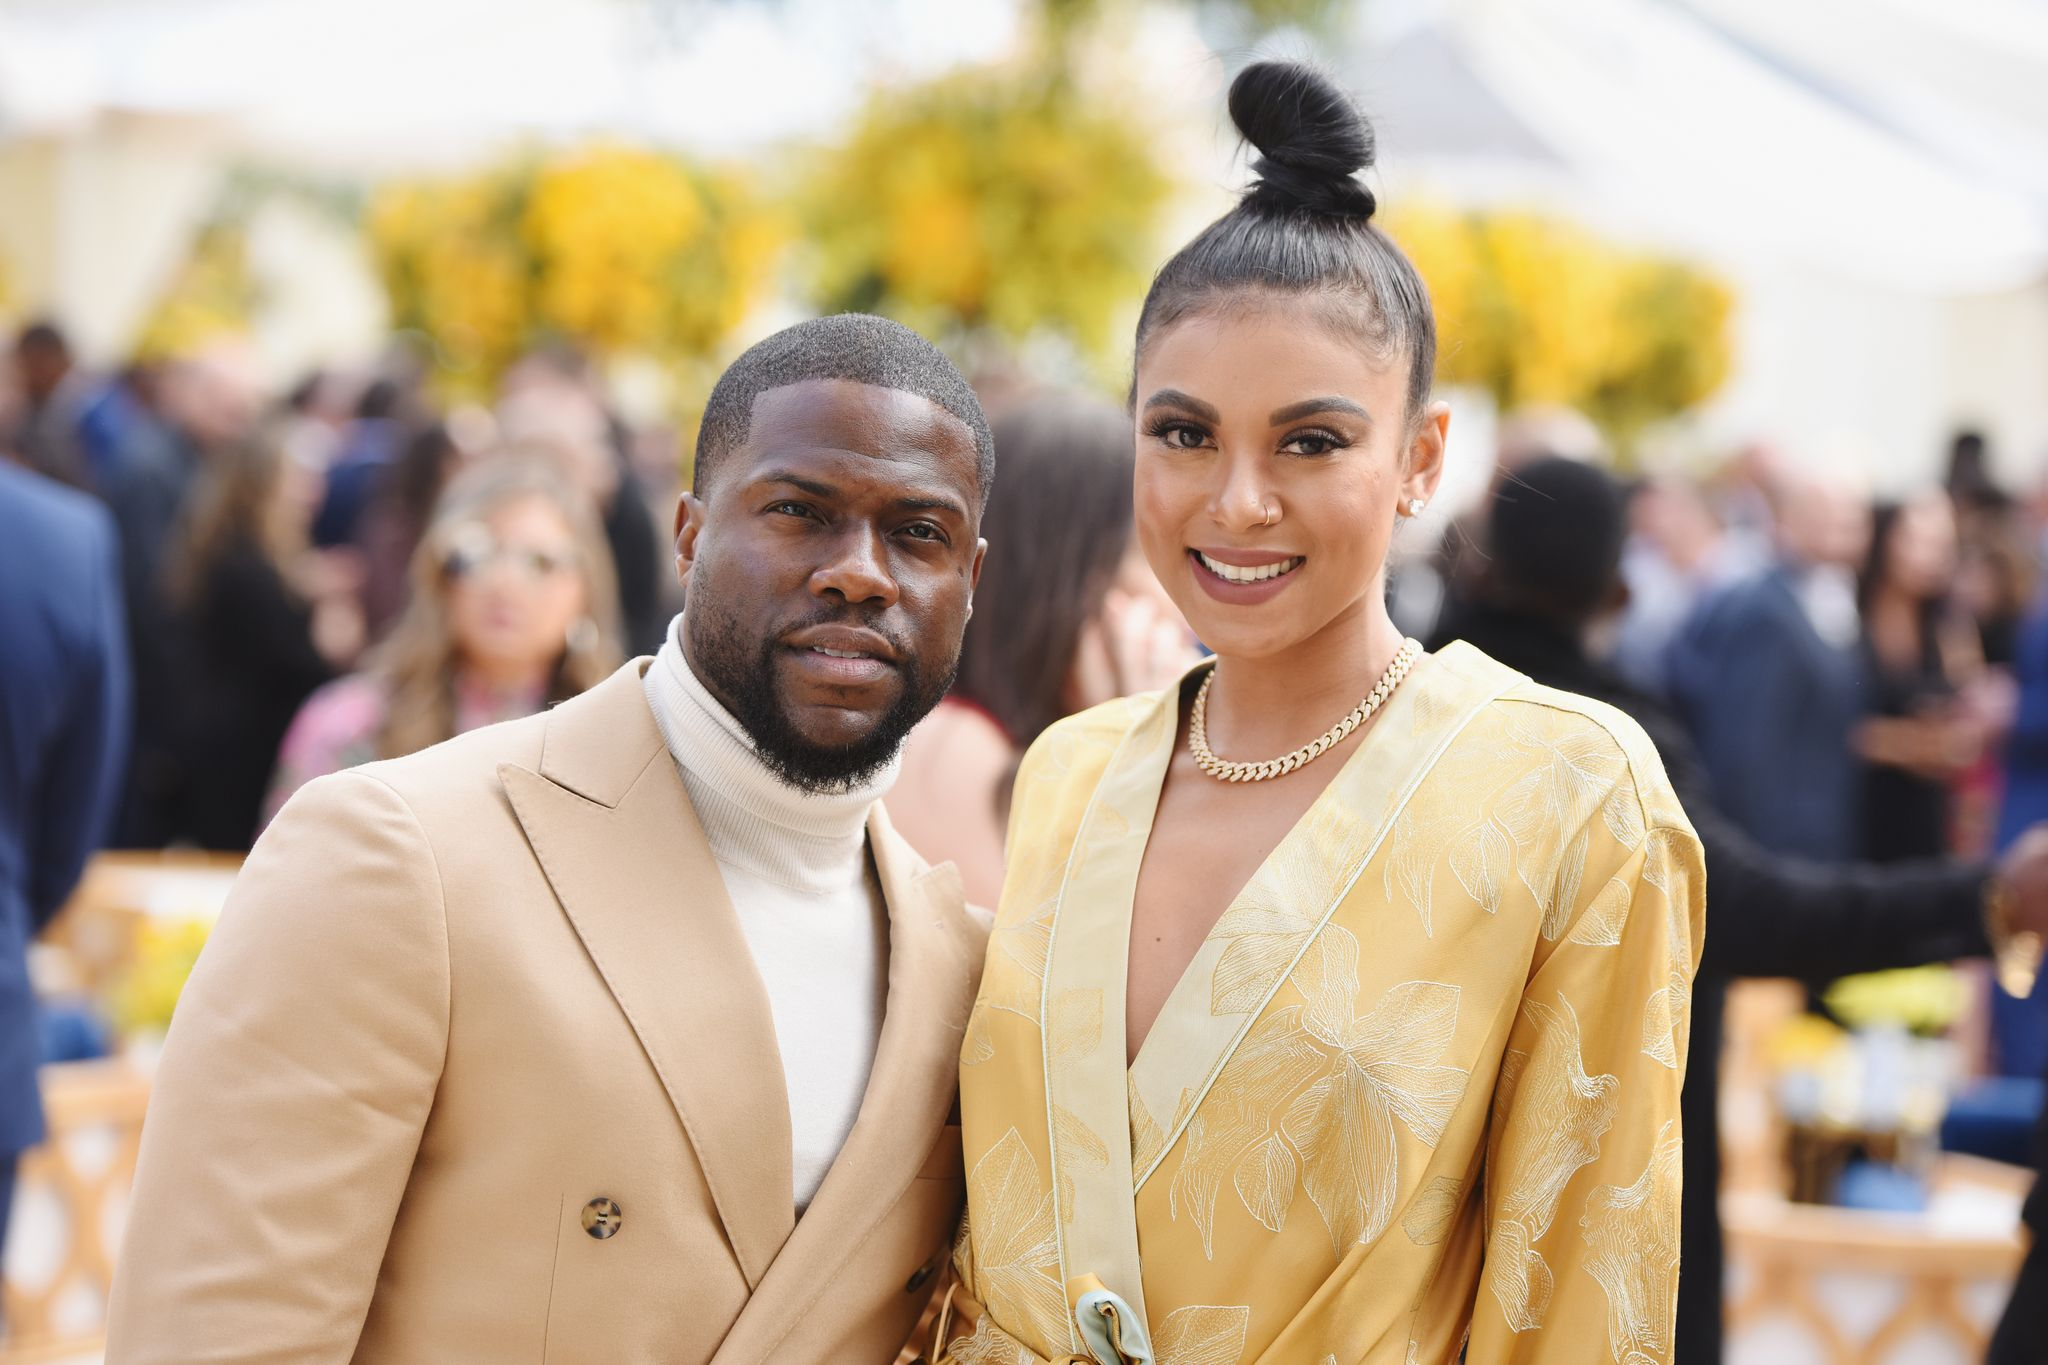 Kevin Hart and Eniko at Roc Nation on February 9, 2019 in Los Angeles. | Photo: Getty Images